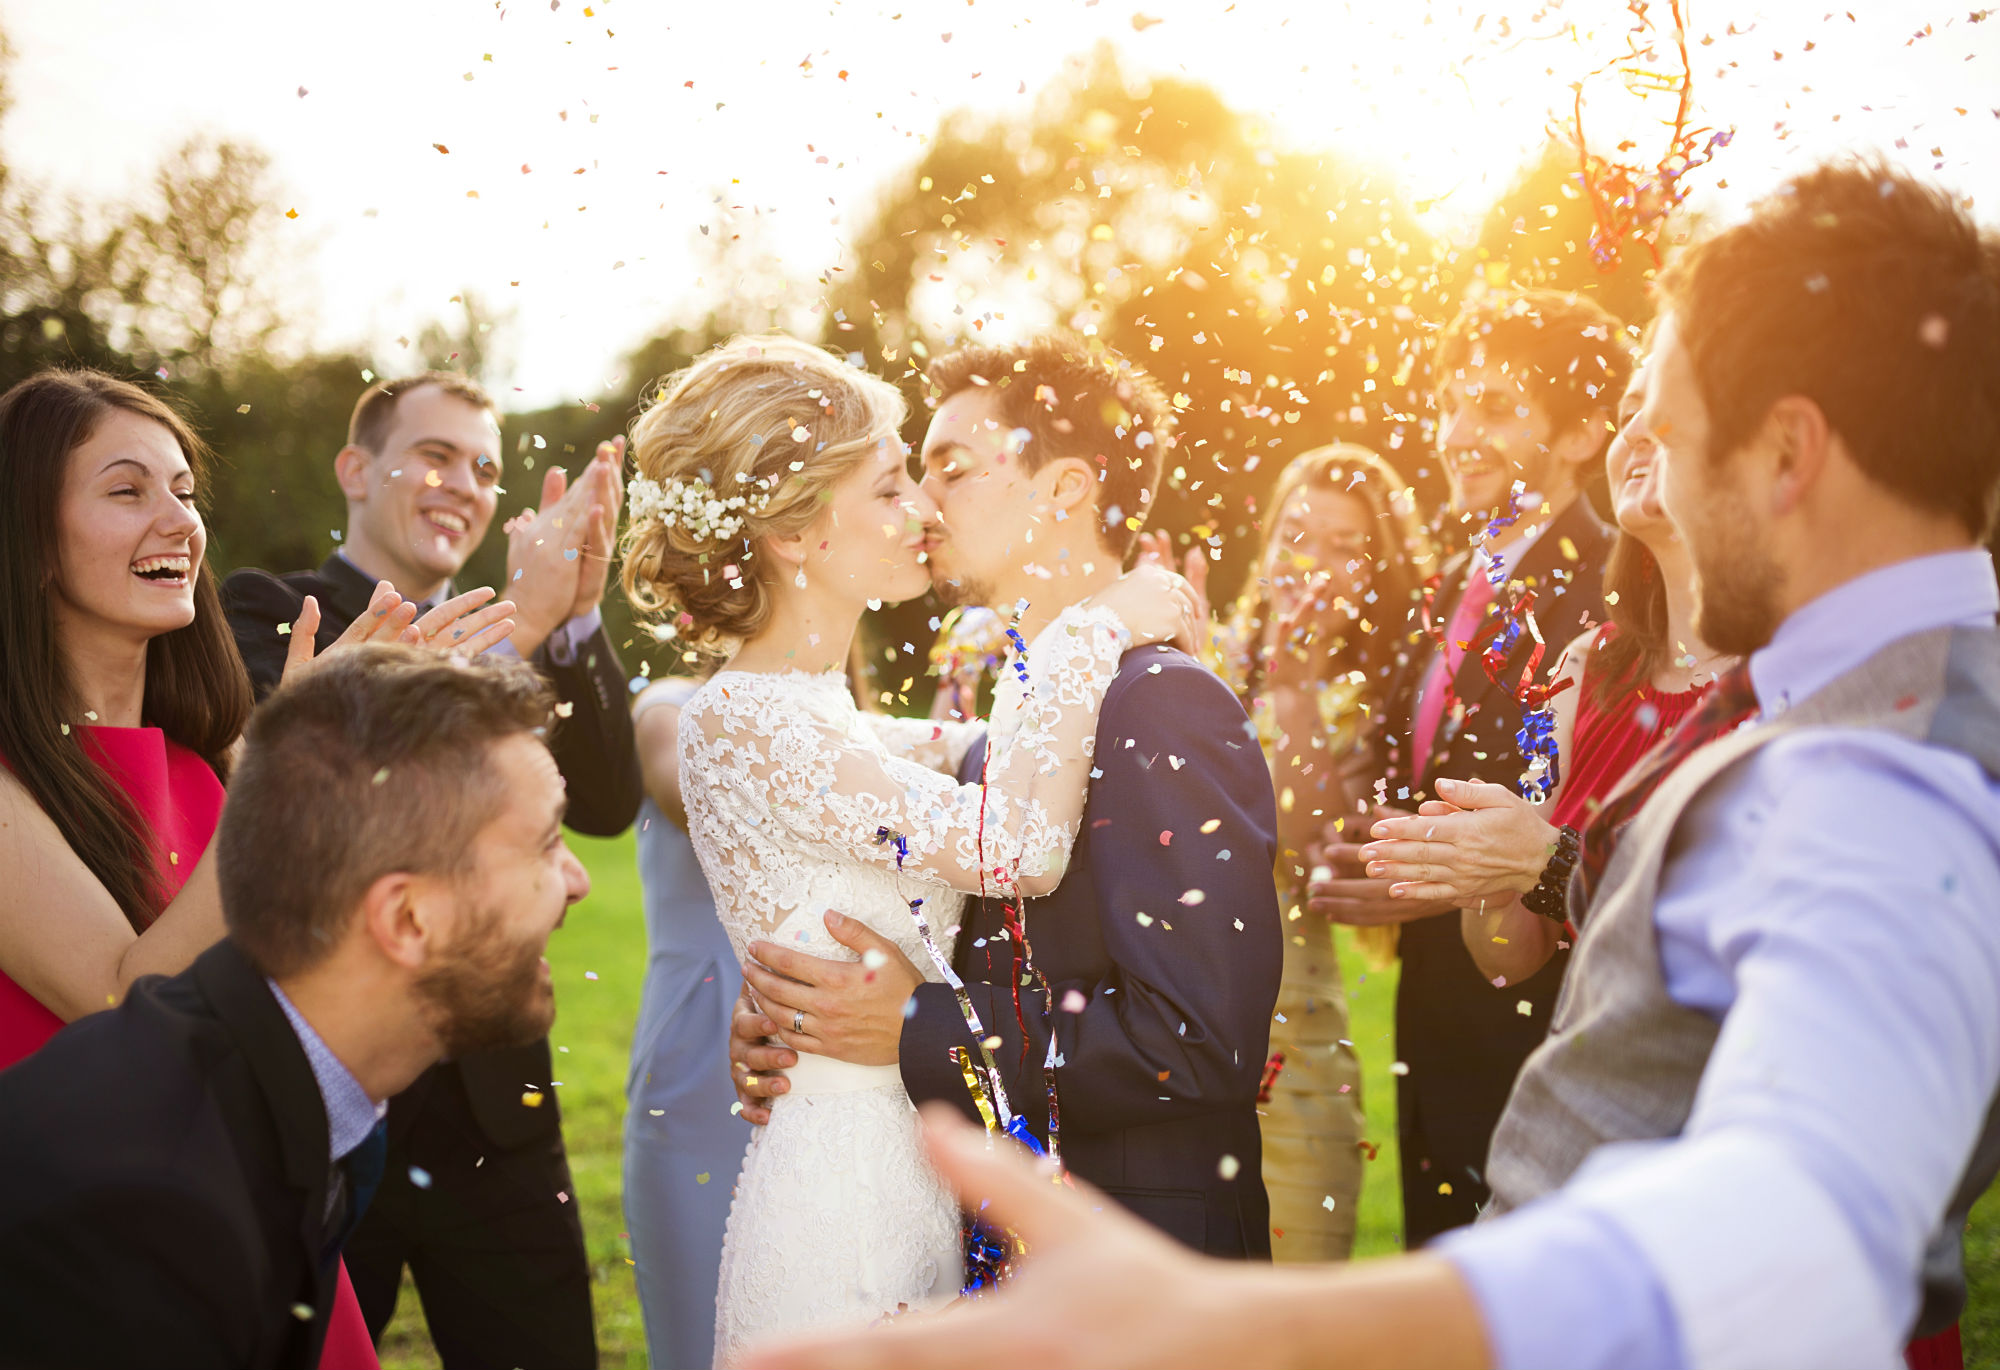 How to have a stress free wedding day